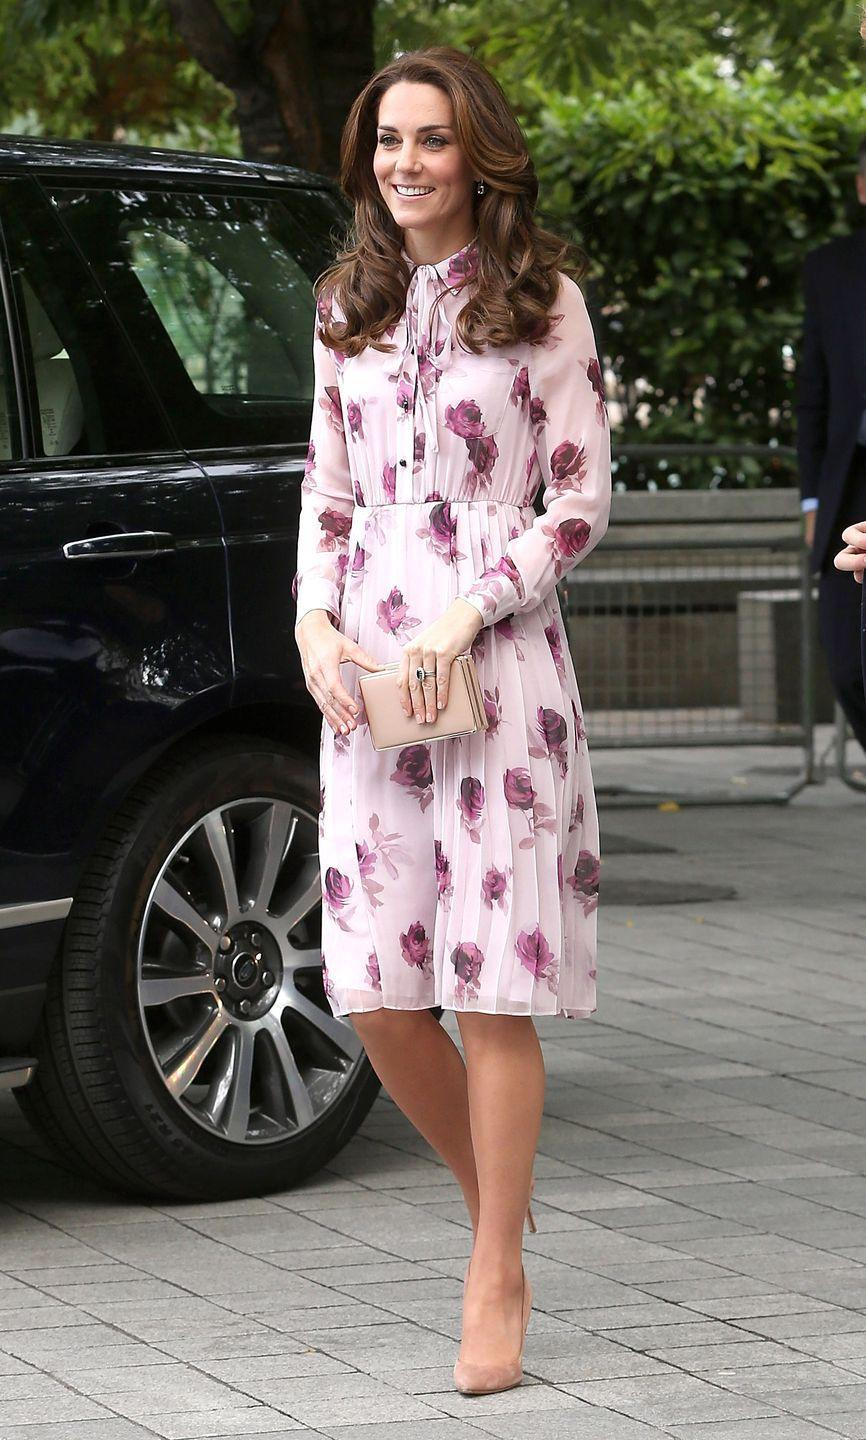 <p>Middleton wears a light pink chiffon Kate Spade dress with a rose pattern, a tie neck and pleated skirt, paired with a nude clutch and suede heeled pumps at while celebrating at World Mental Health Day in London. </p>